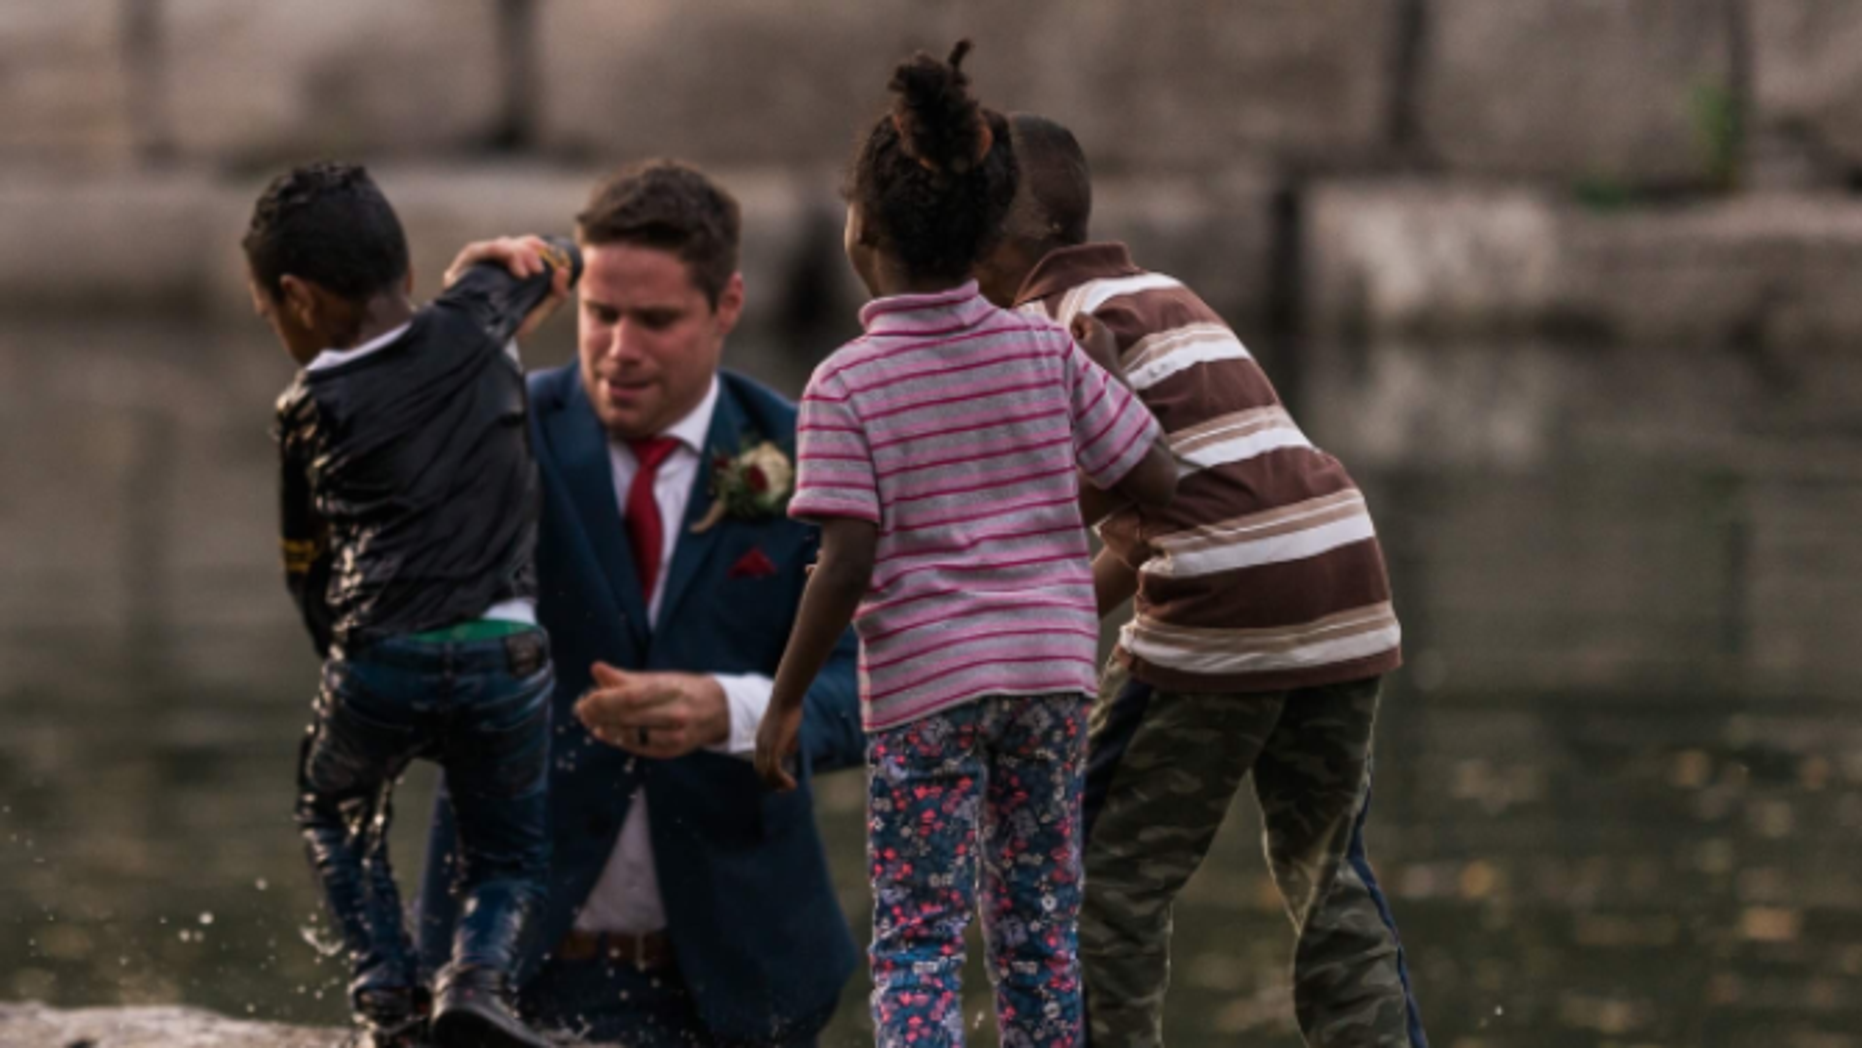 Canadian groom Clayton Cook stopped posing for wedding photos to save a young boy drowning in a pond Friday.